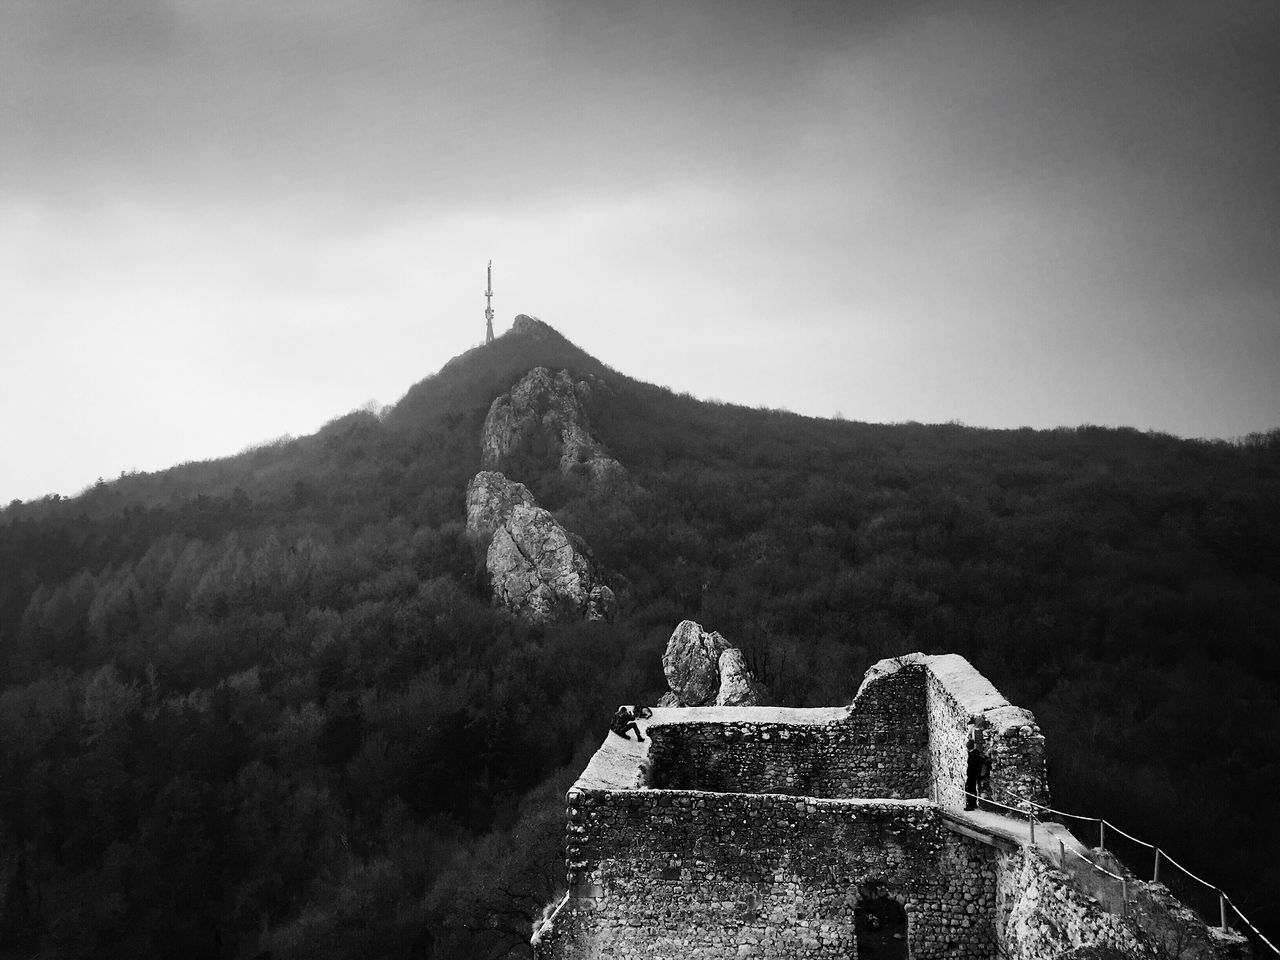 Remains of medieval fortress at old town Kalnik (elevation 500 m) and Vranilec mountain peak in the background (elevation 643 m), highest peak of Kalnik mountain ridge. Croatia, 2017. Kalnik Croatia Mountain Mountain Range Built Structure Old Town Ruins Ruins Architecture Architecture History Beauty In Nature Nature Outdoors Mountain Peak Peak TV Tower Tower